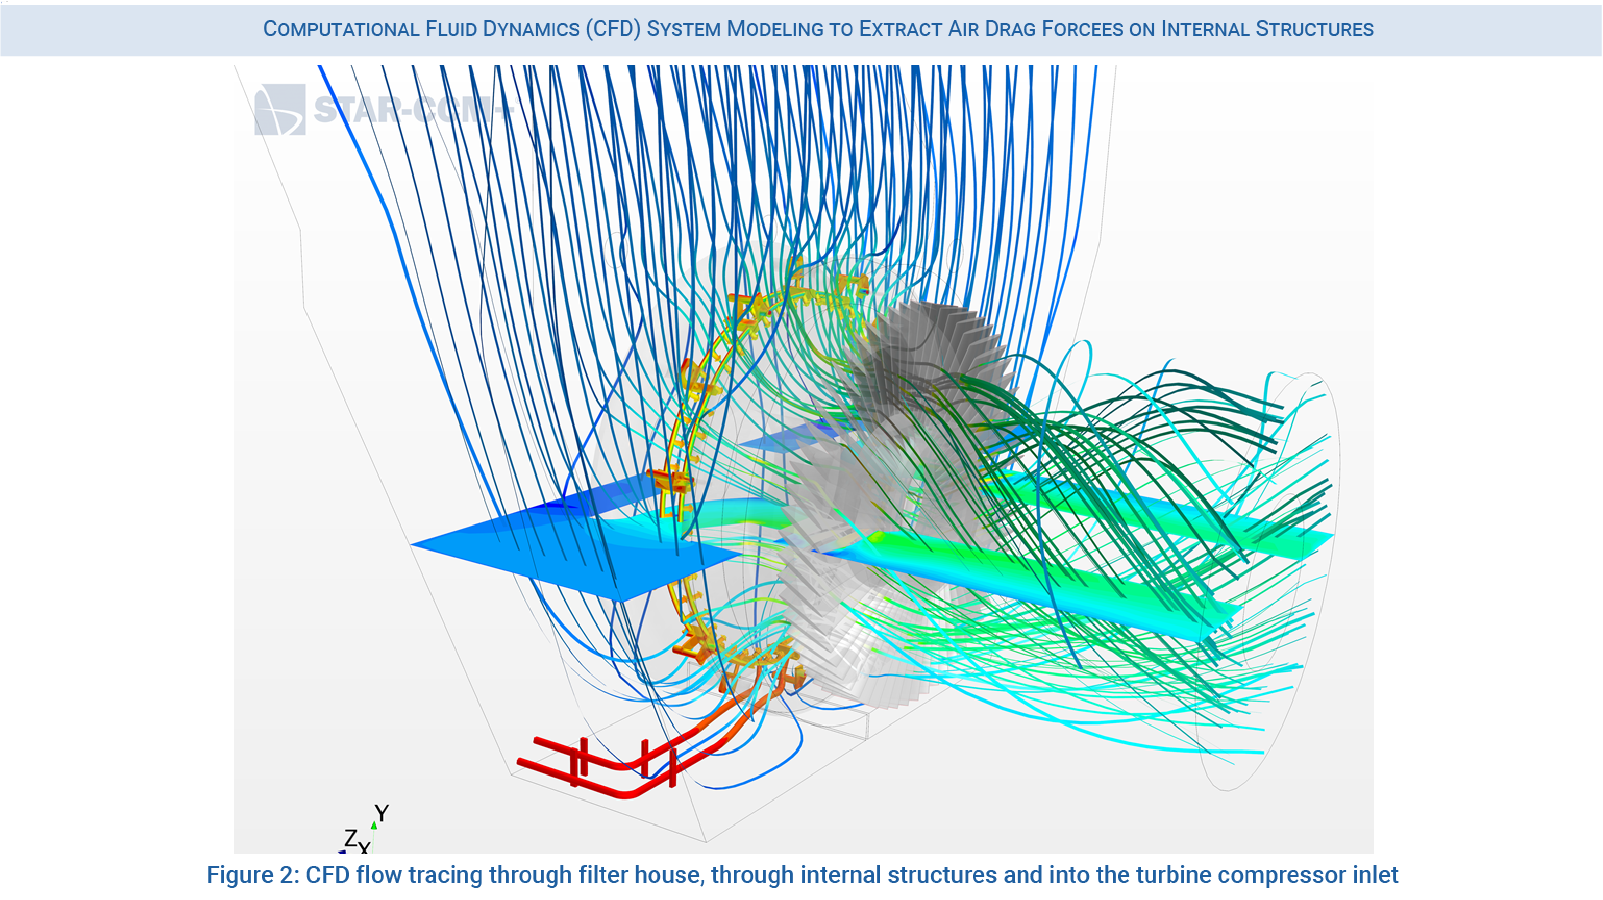 CFD flow tracing through filter house, through wet compression device and into gas turbine compressor inlet